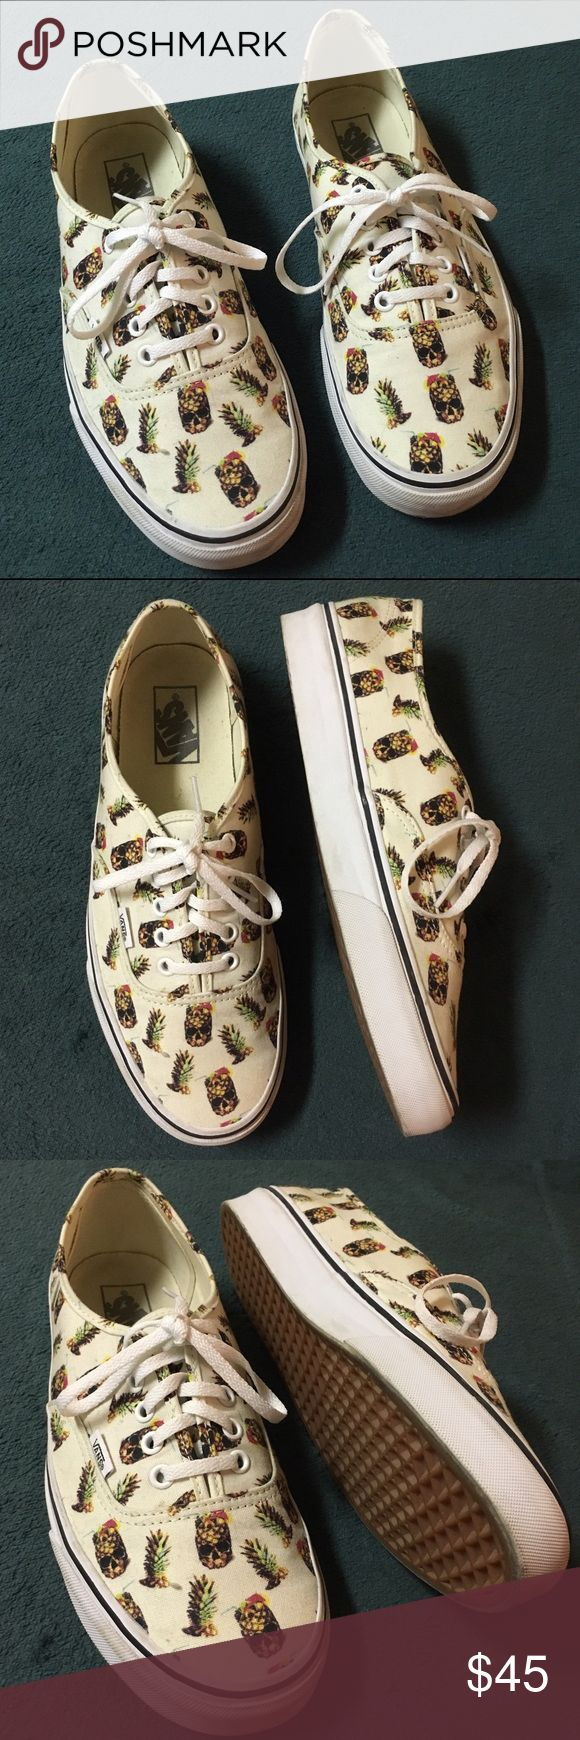 Authentic vans pineapple skulls Vans authentic pineapple skull.  Worn a couple of times but still in excellent condition as shown in photos  No trades Vans Shoes